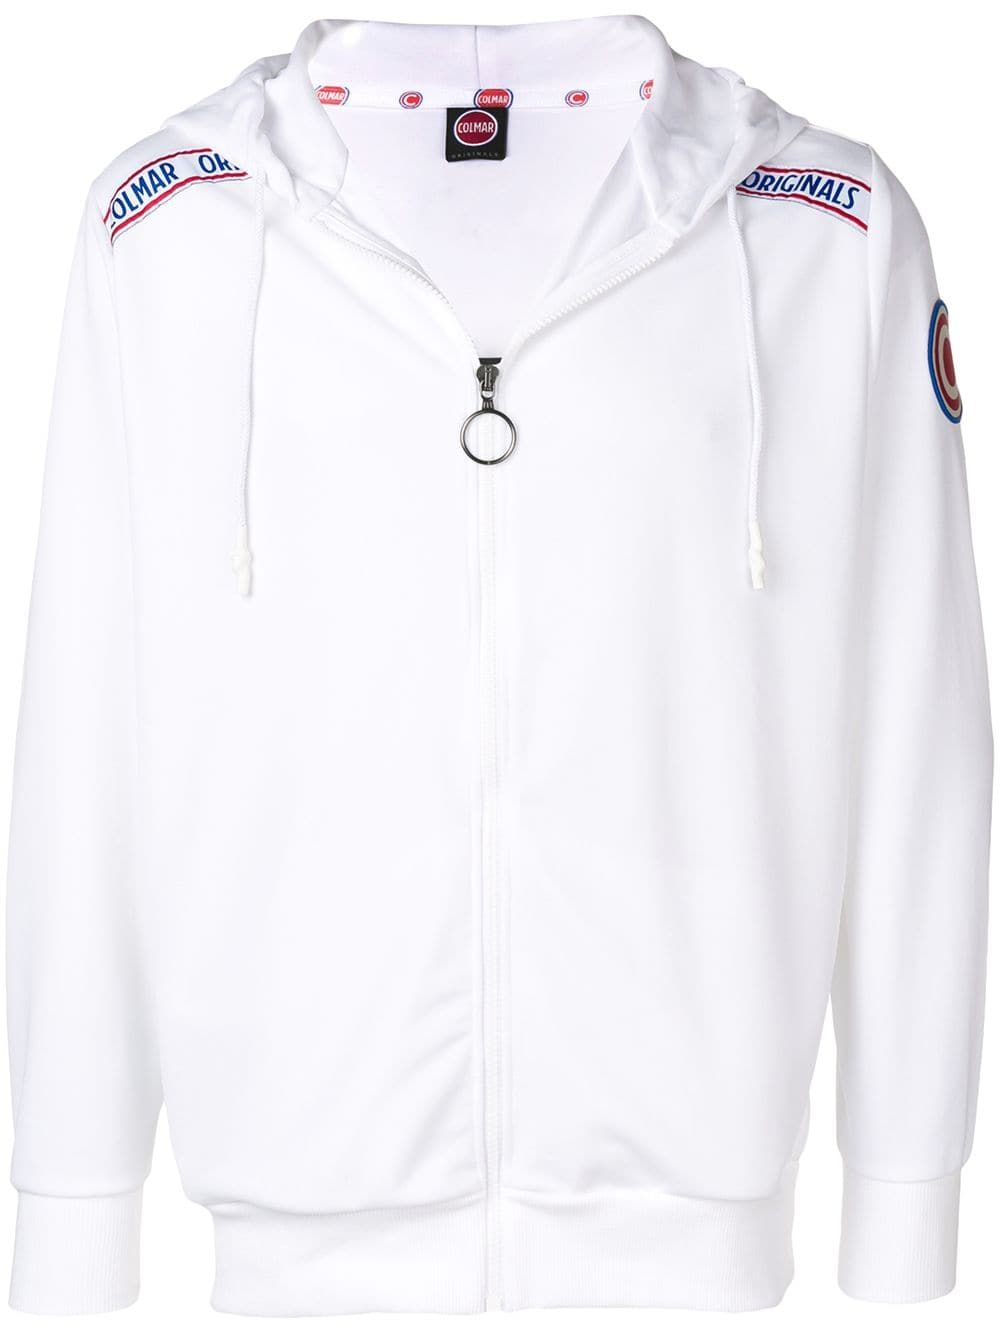 Colmar logo zip-up hoodie - White in 2019 | Products